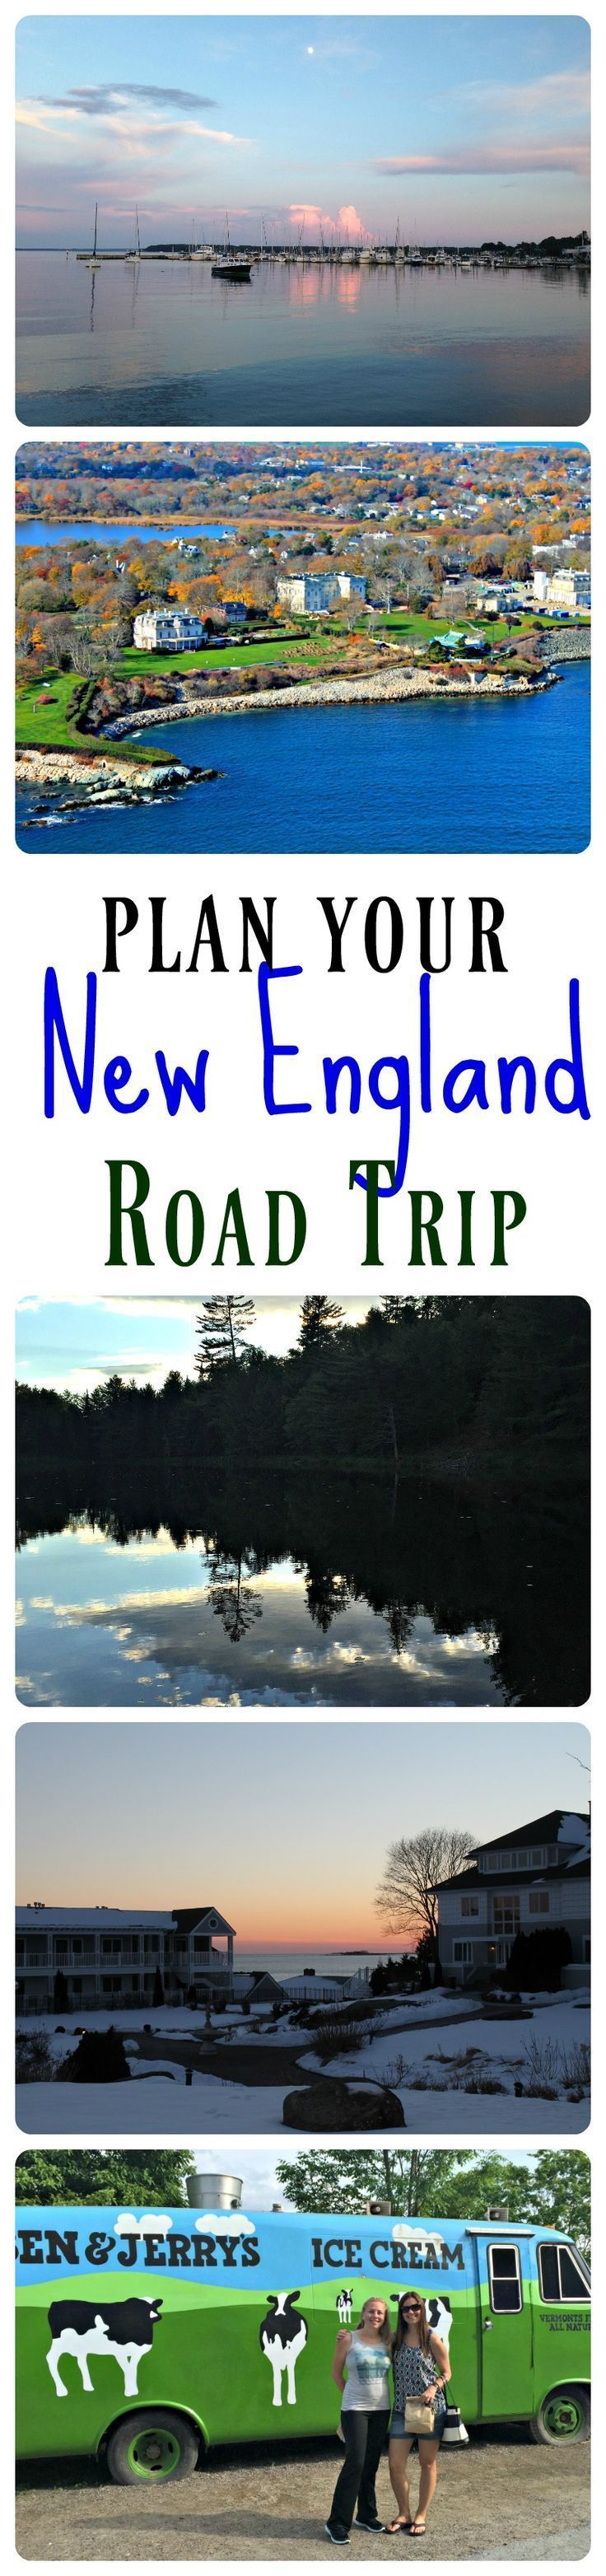 A Local's Guide to New England - The Daily Adventures of Me